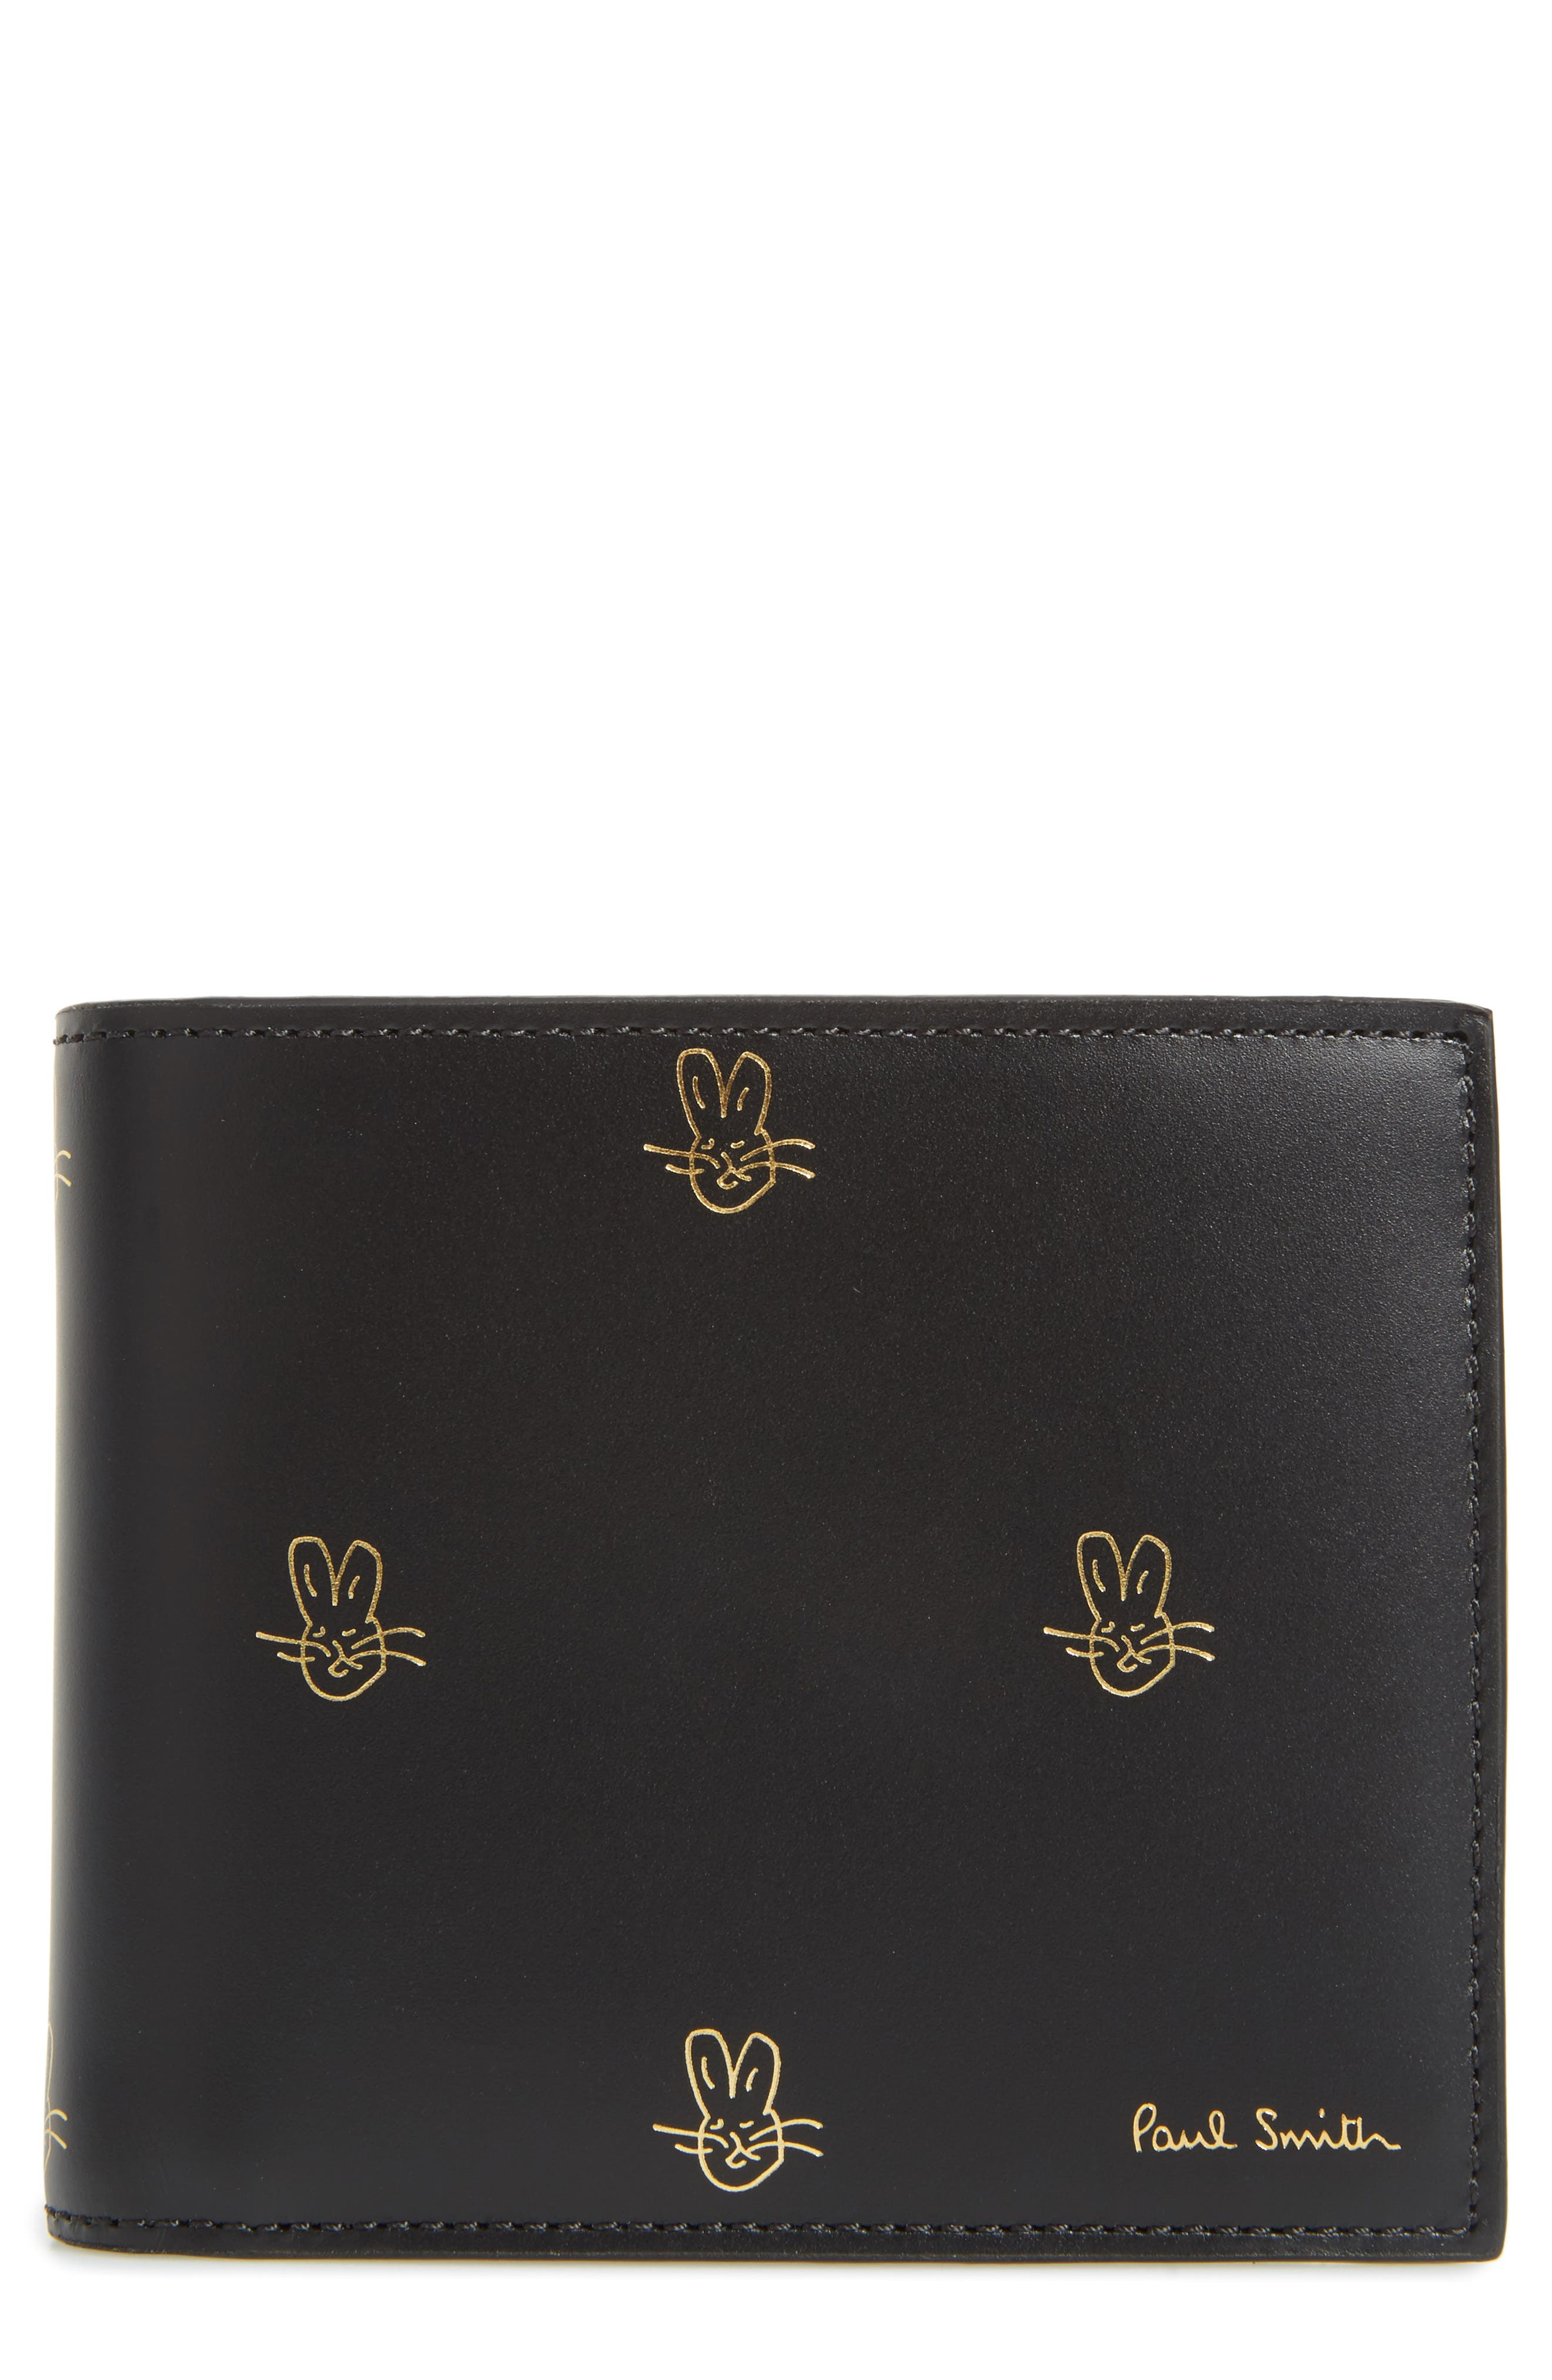 Alternate Image 1 Selected - Paul Smith Doodles Leather Billfold Wallet